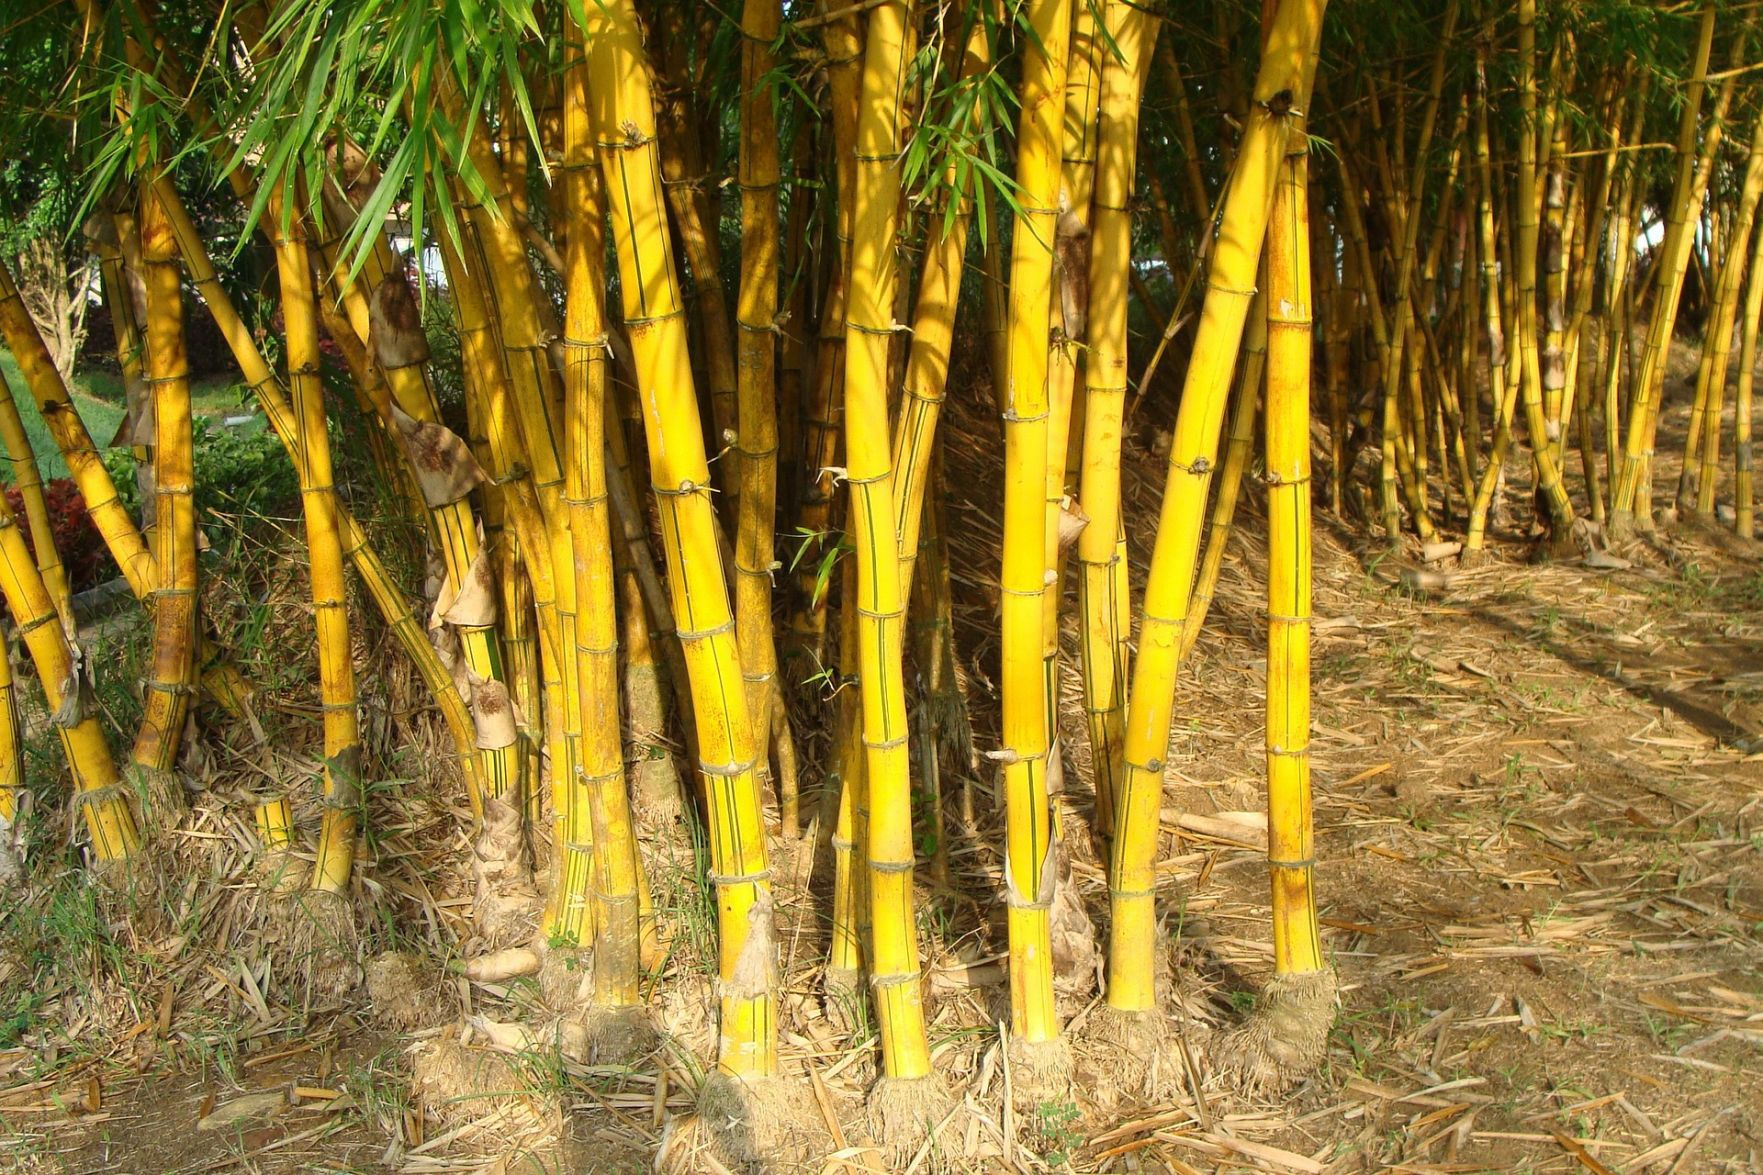 Cute Salt Good How To Kill Bamboo Gen Bamboo Stafford Tries To Stem Bamboo Invasion By Regulating Plant How To Kill Bamboo houzz 01 How To Kill Bamboo